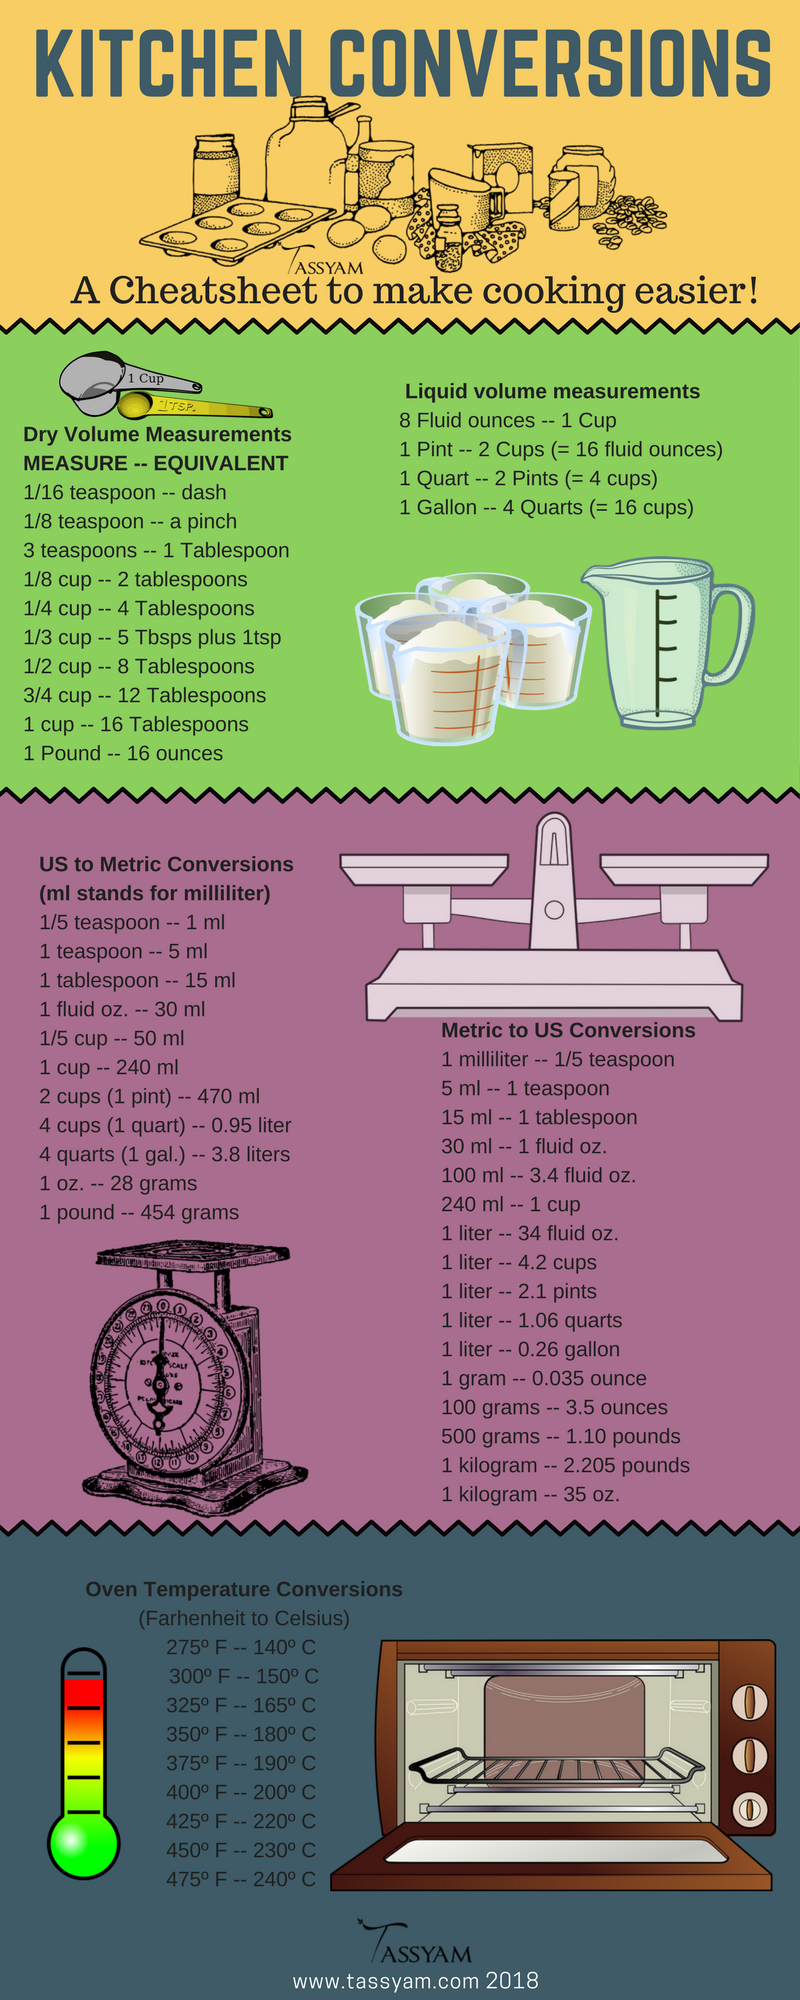 Kitchen Conversion Cheatsheet: A Simple Guide to make